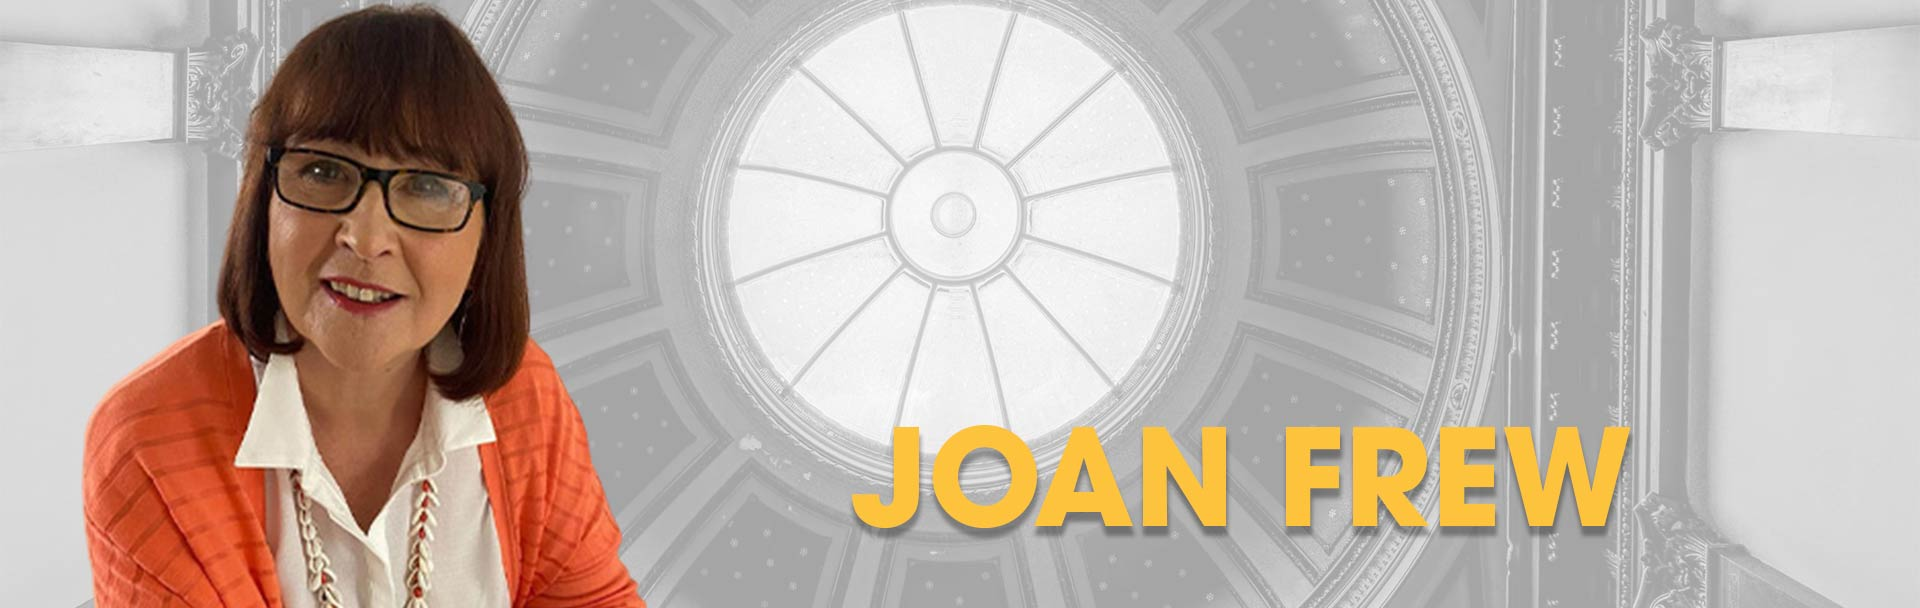 Joan Frew is part of Saturday Night Demonstrations of Mediumship at the Sir Arthur Conan Doyle Centre